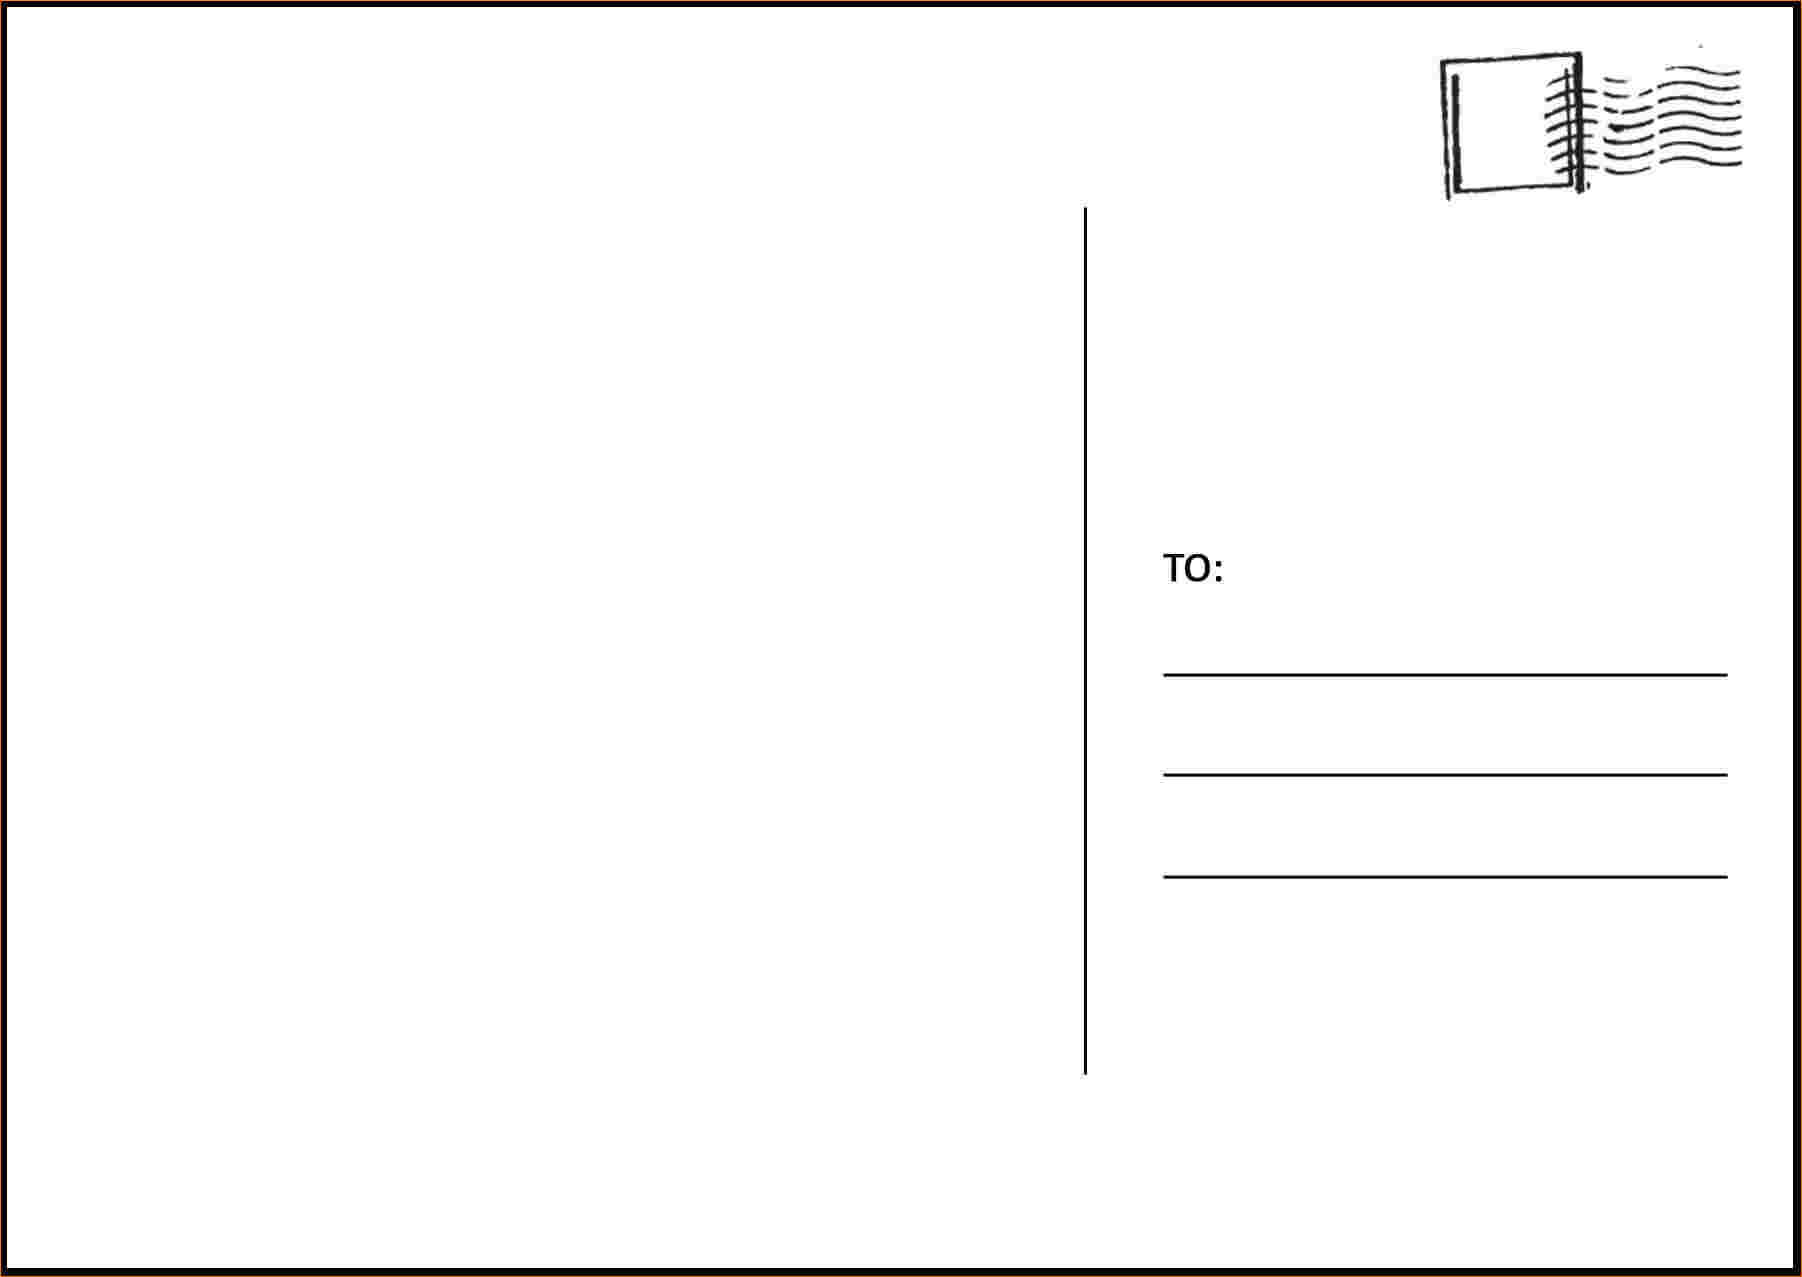 Postcard Template Microsoft Word - Tunu.redmini.co Regarding 4 To A Page Postcard Template